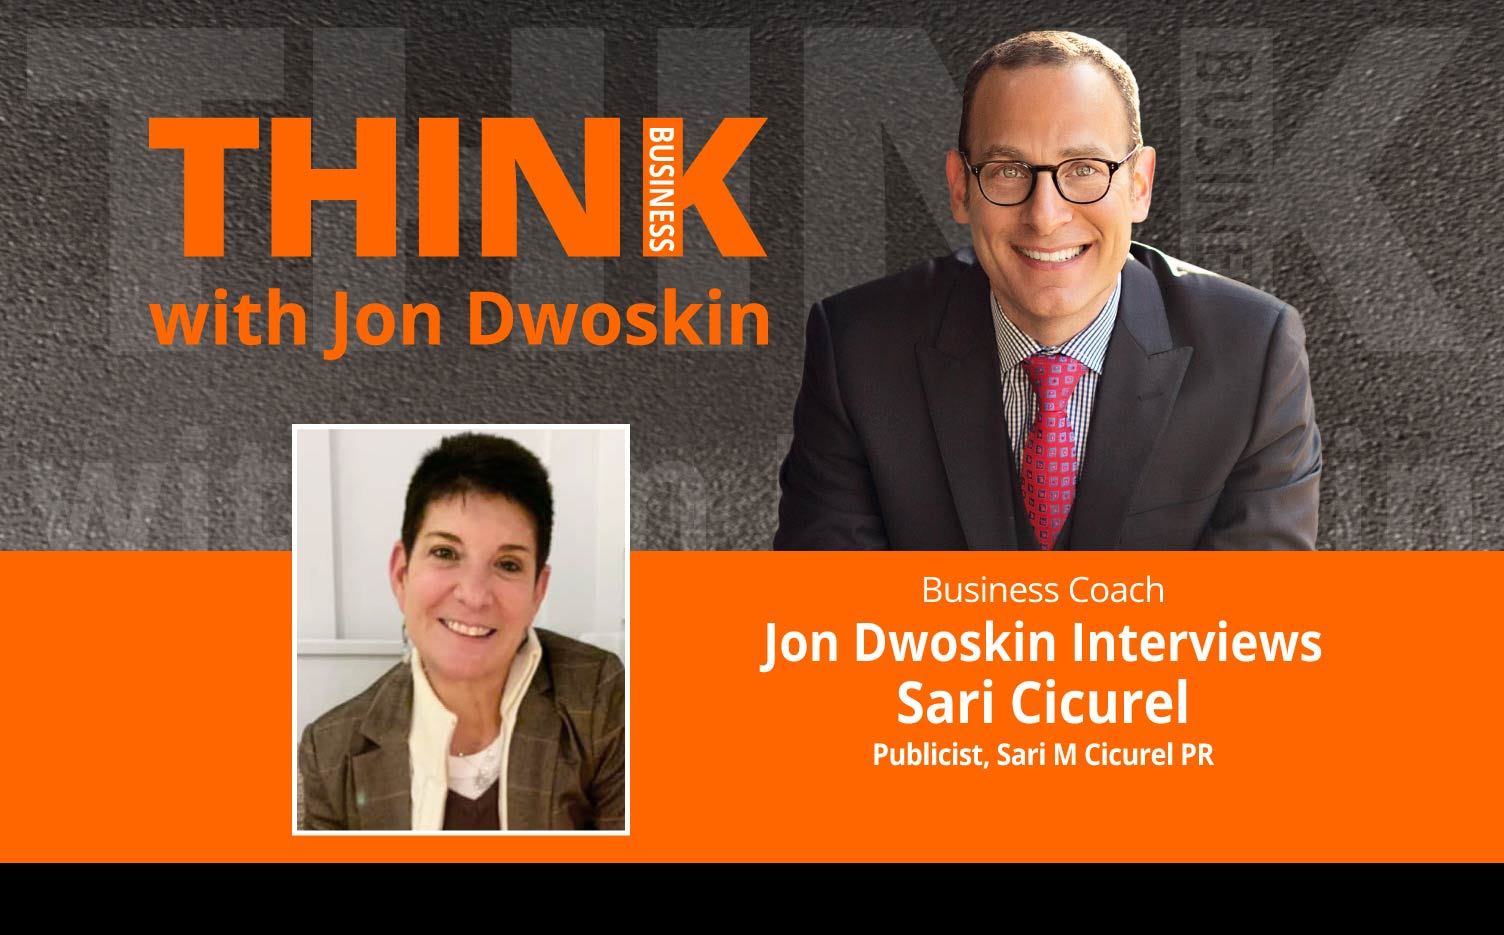 THINK Business Podcast: Jon Dwoskin Interviews Sari Cicurel, Publicist, Sari M Cicurel PR